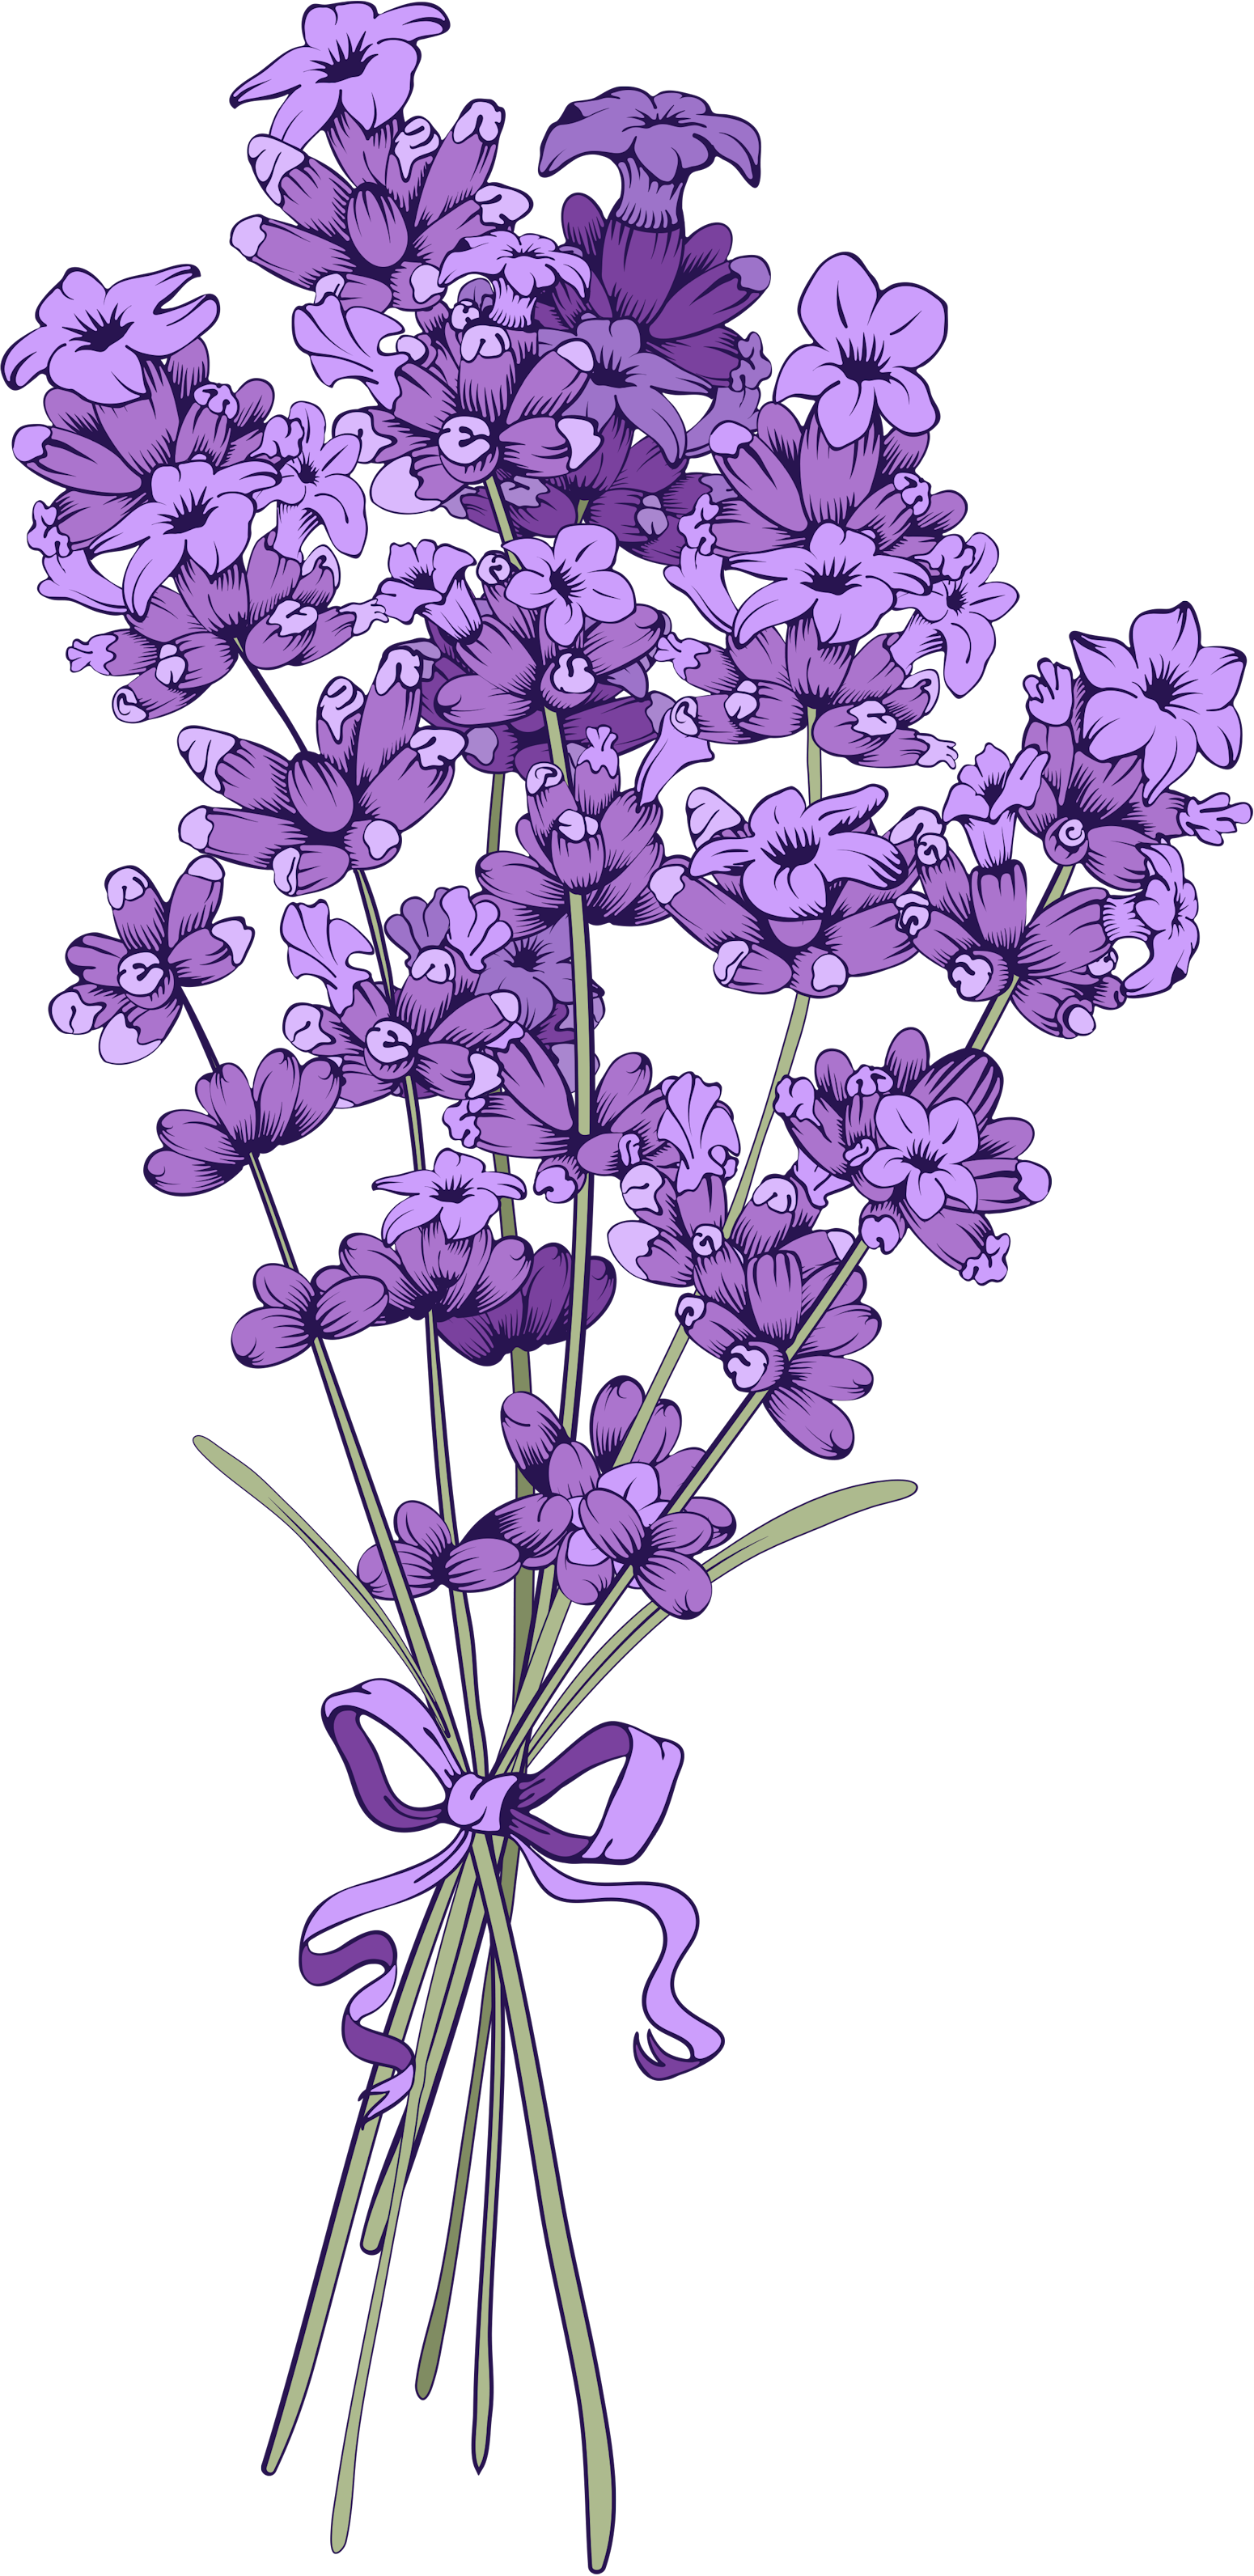 Lavender clipart lavender field. Pin by on pinterest